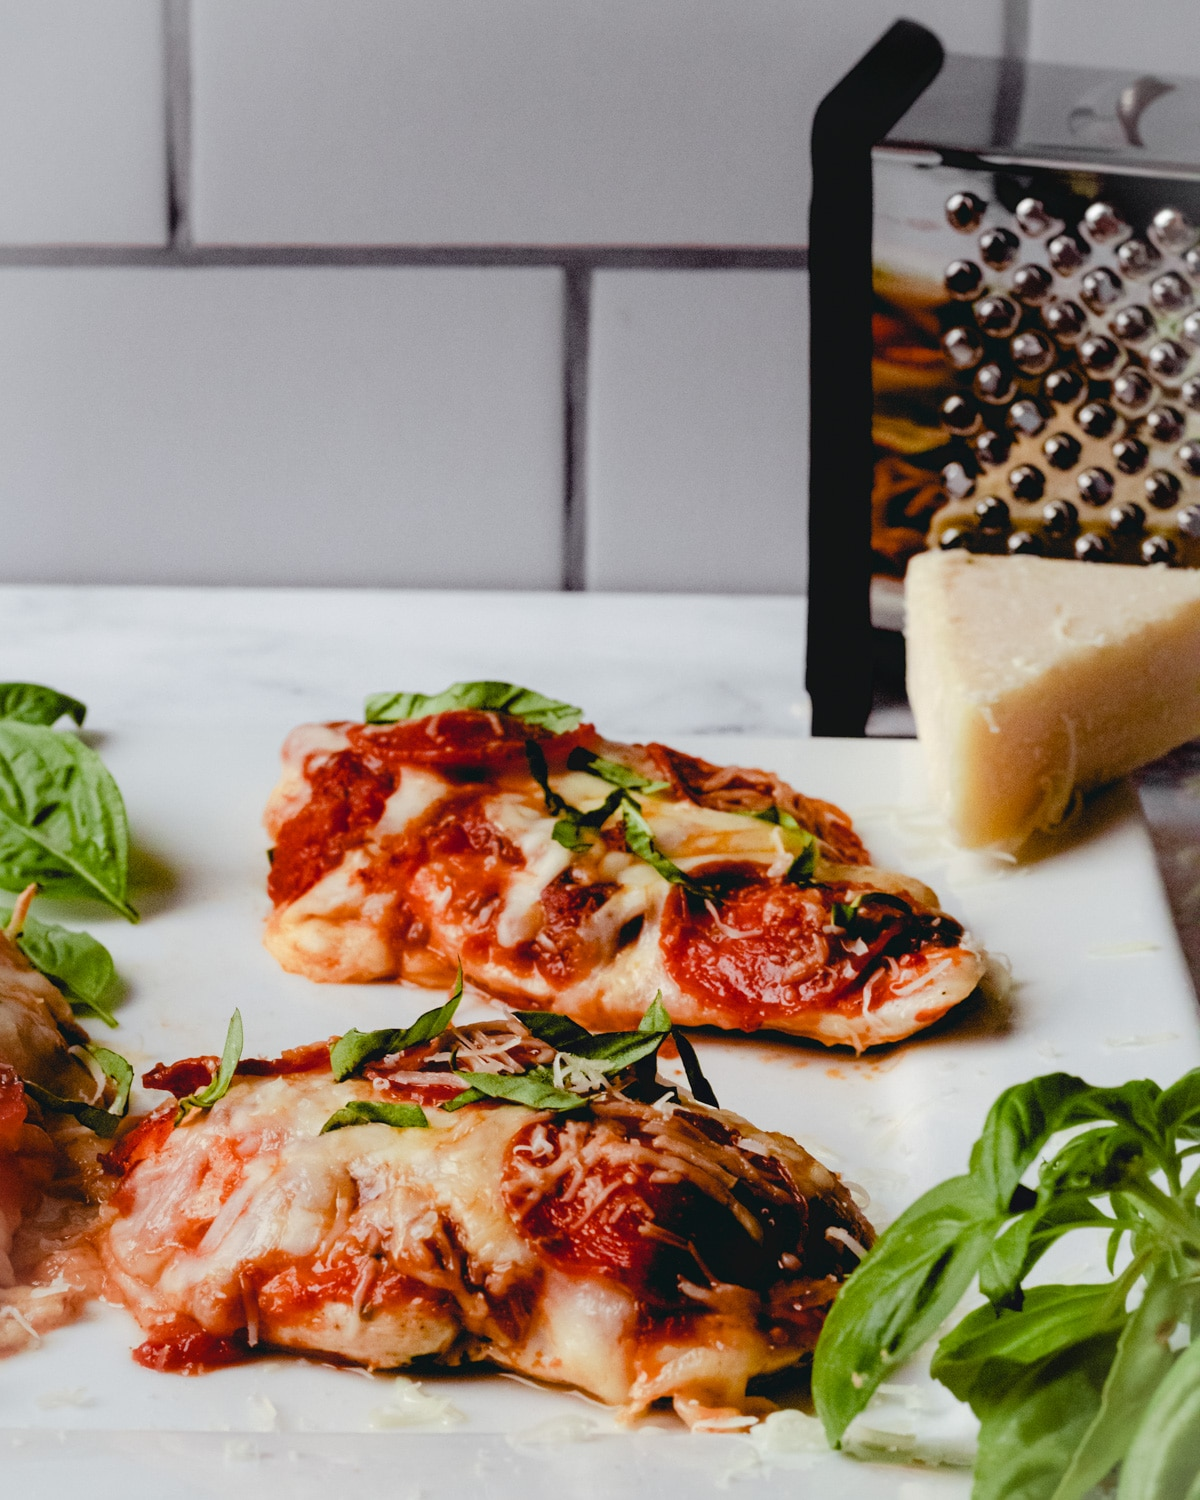 Two pieces of pizza chicken on a plate topped with basil, and a wedge of parmesan cheese in the corner.